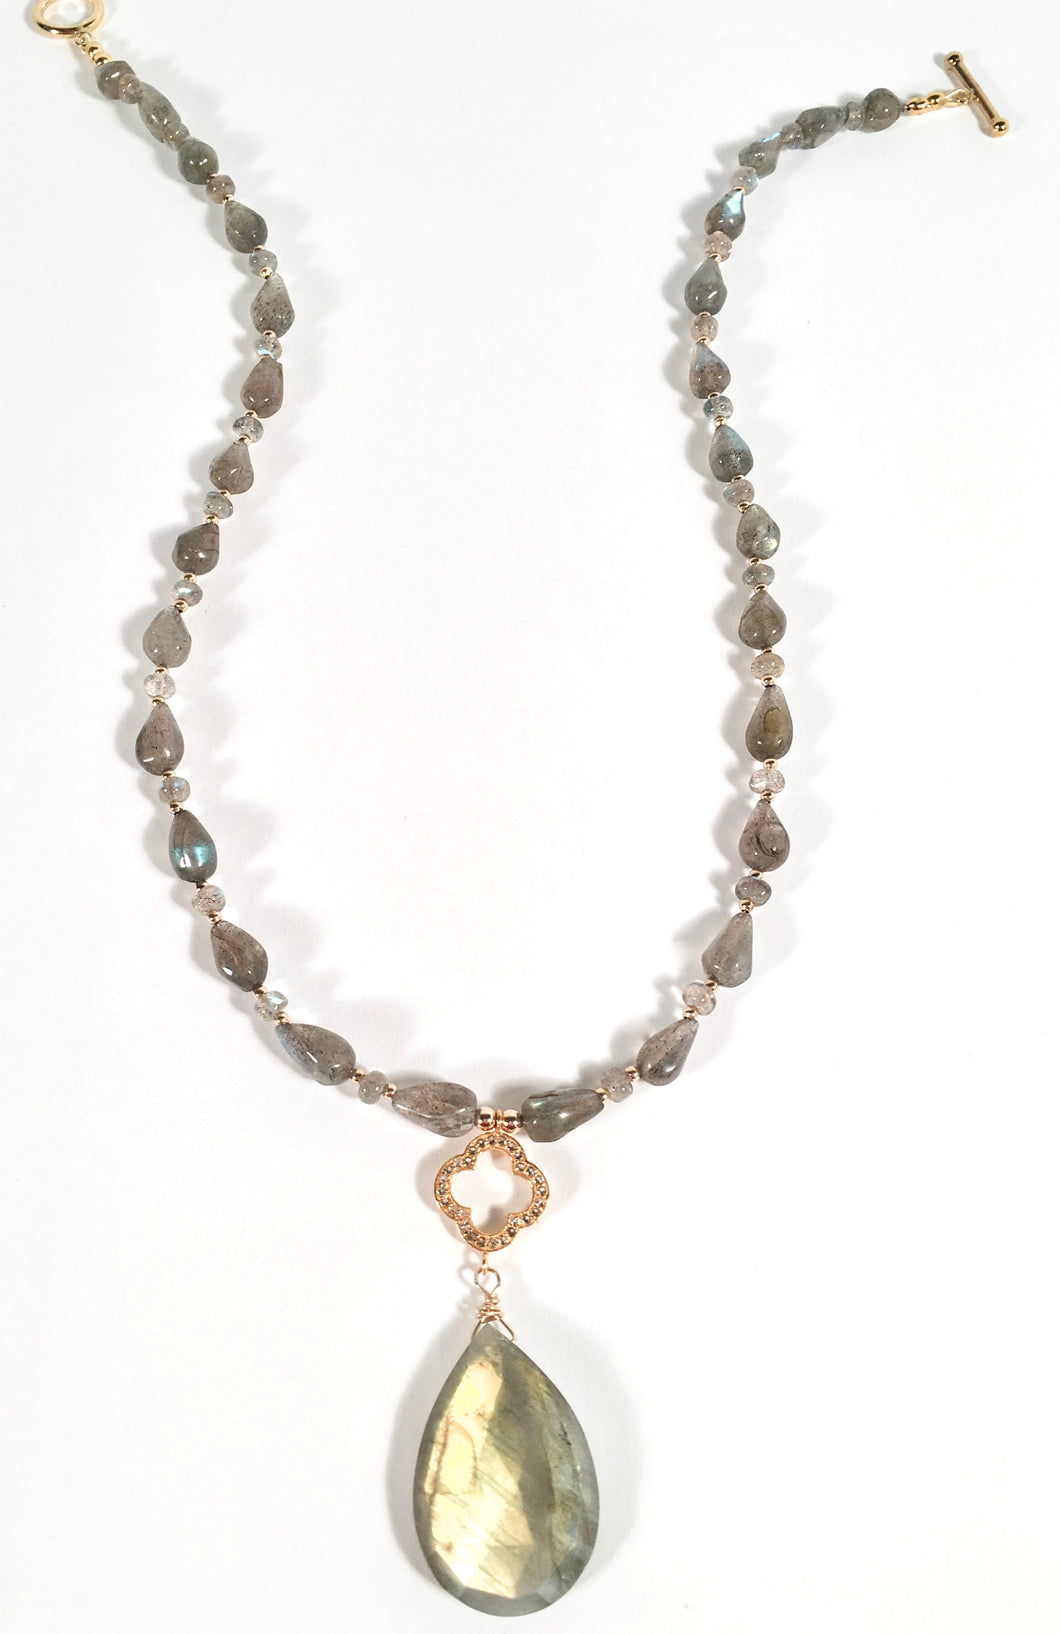 Golden Gray Labradorite Pendant Necklace